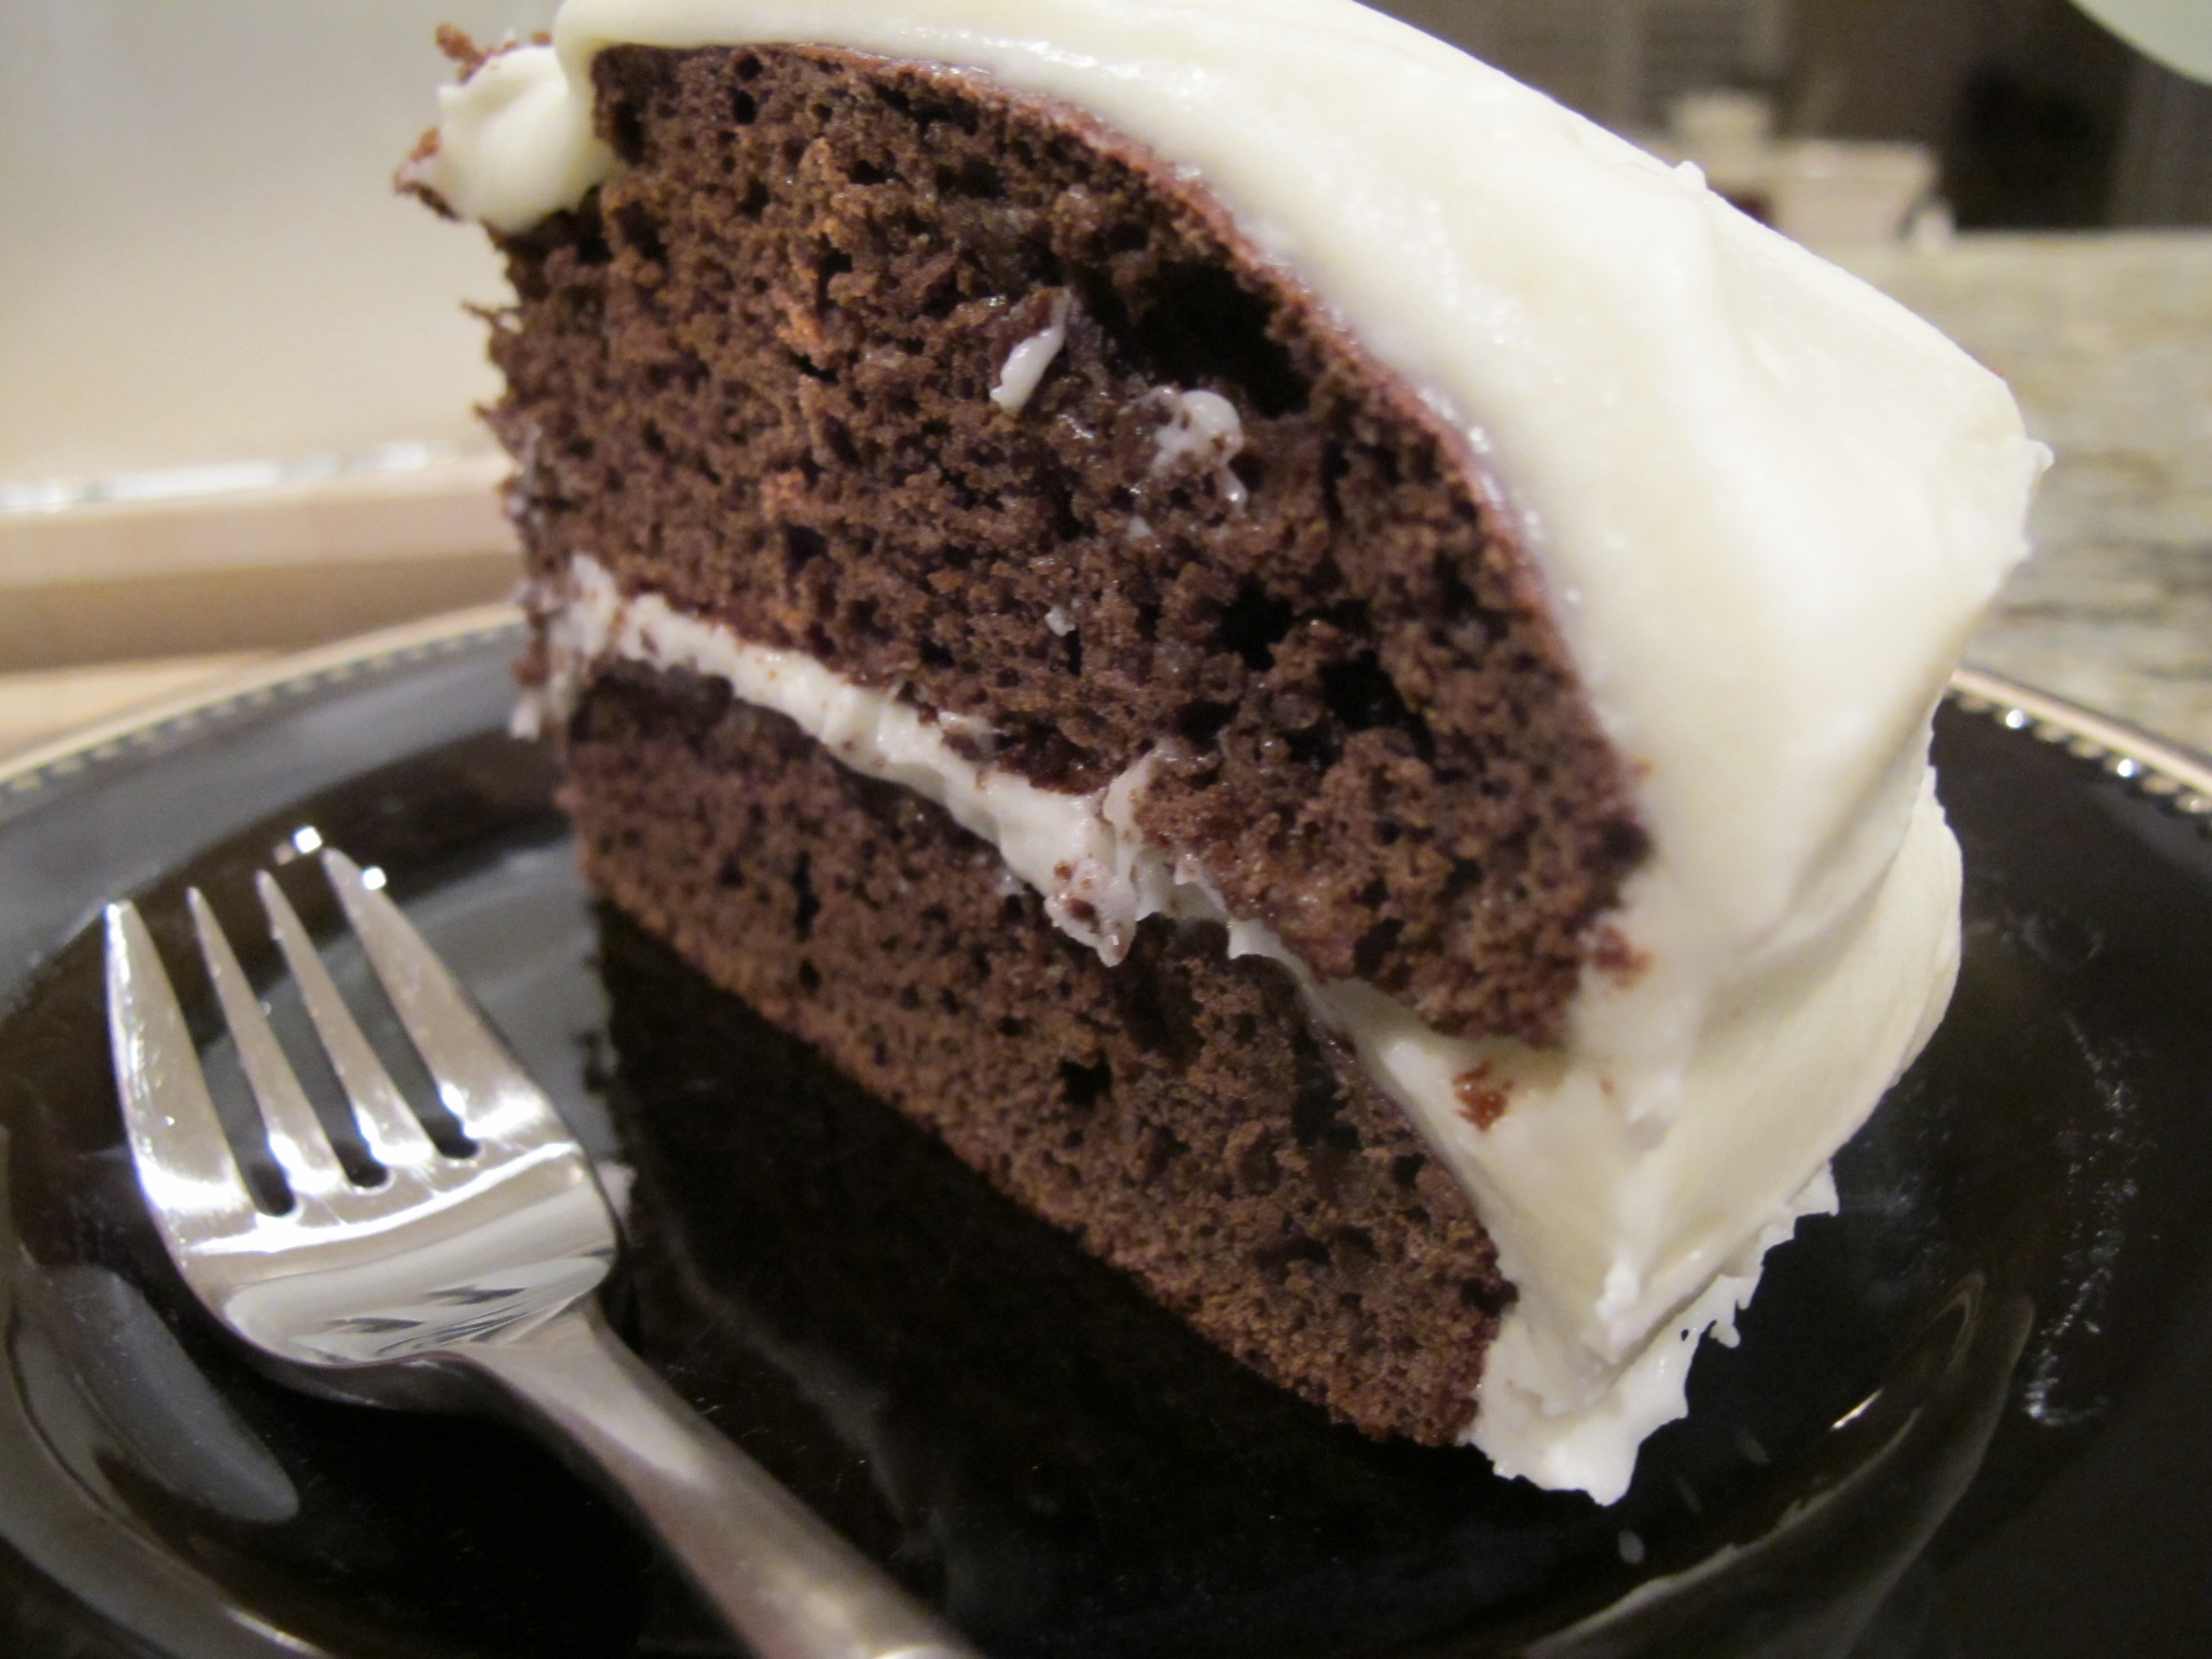 Chocolate Beet Cake with Cream Cheese Frosting | Have Dessert First